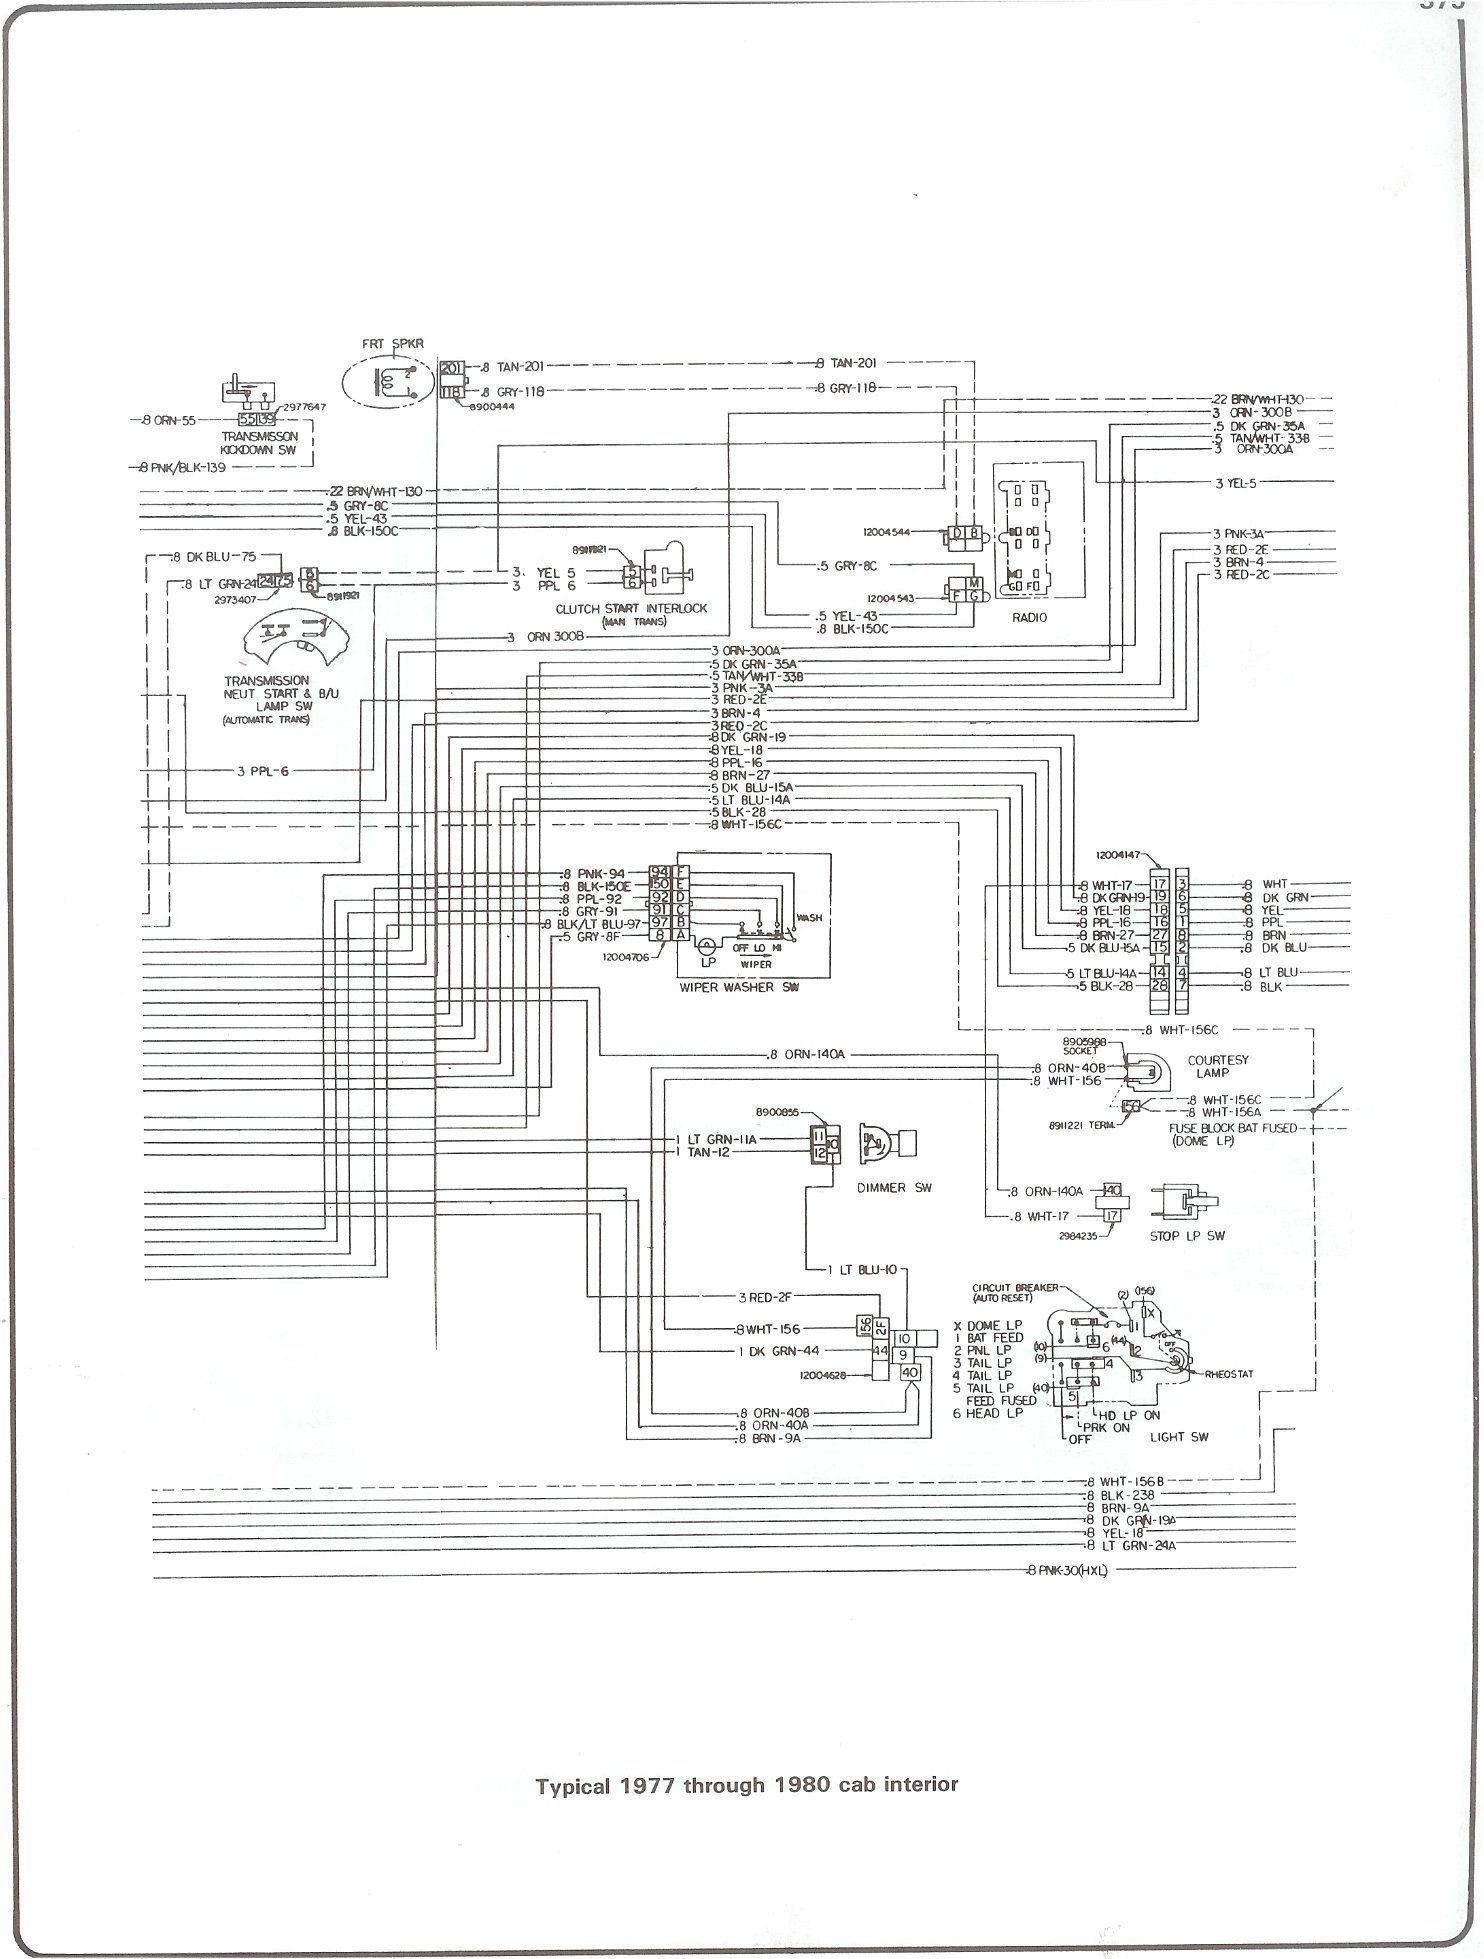 1982 Chevy Truck Wiring Diagram The Portal And Forum Of Headlight Complete 73 87 Diagrams Rh 87chevytrucks Com 82 Chevrolet